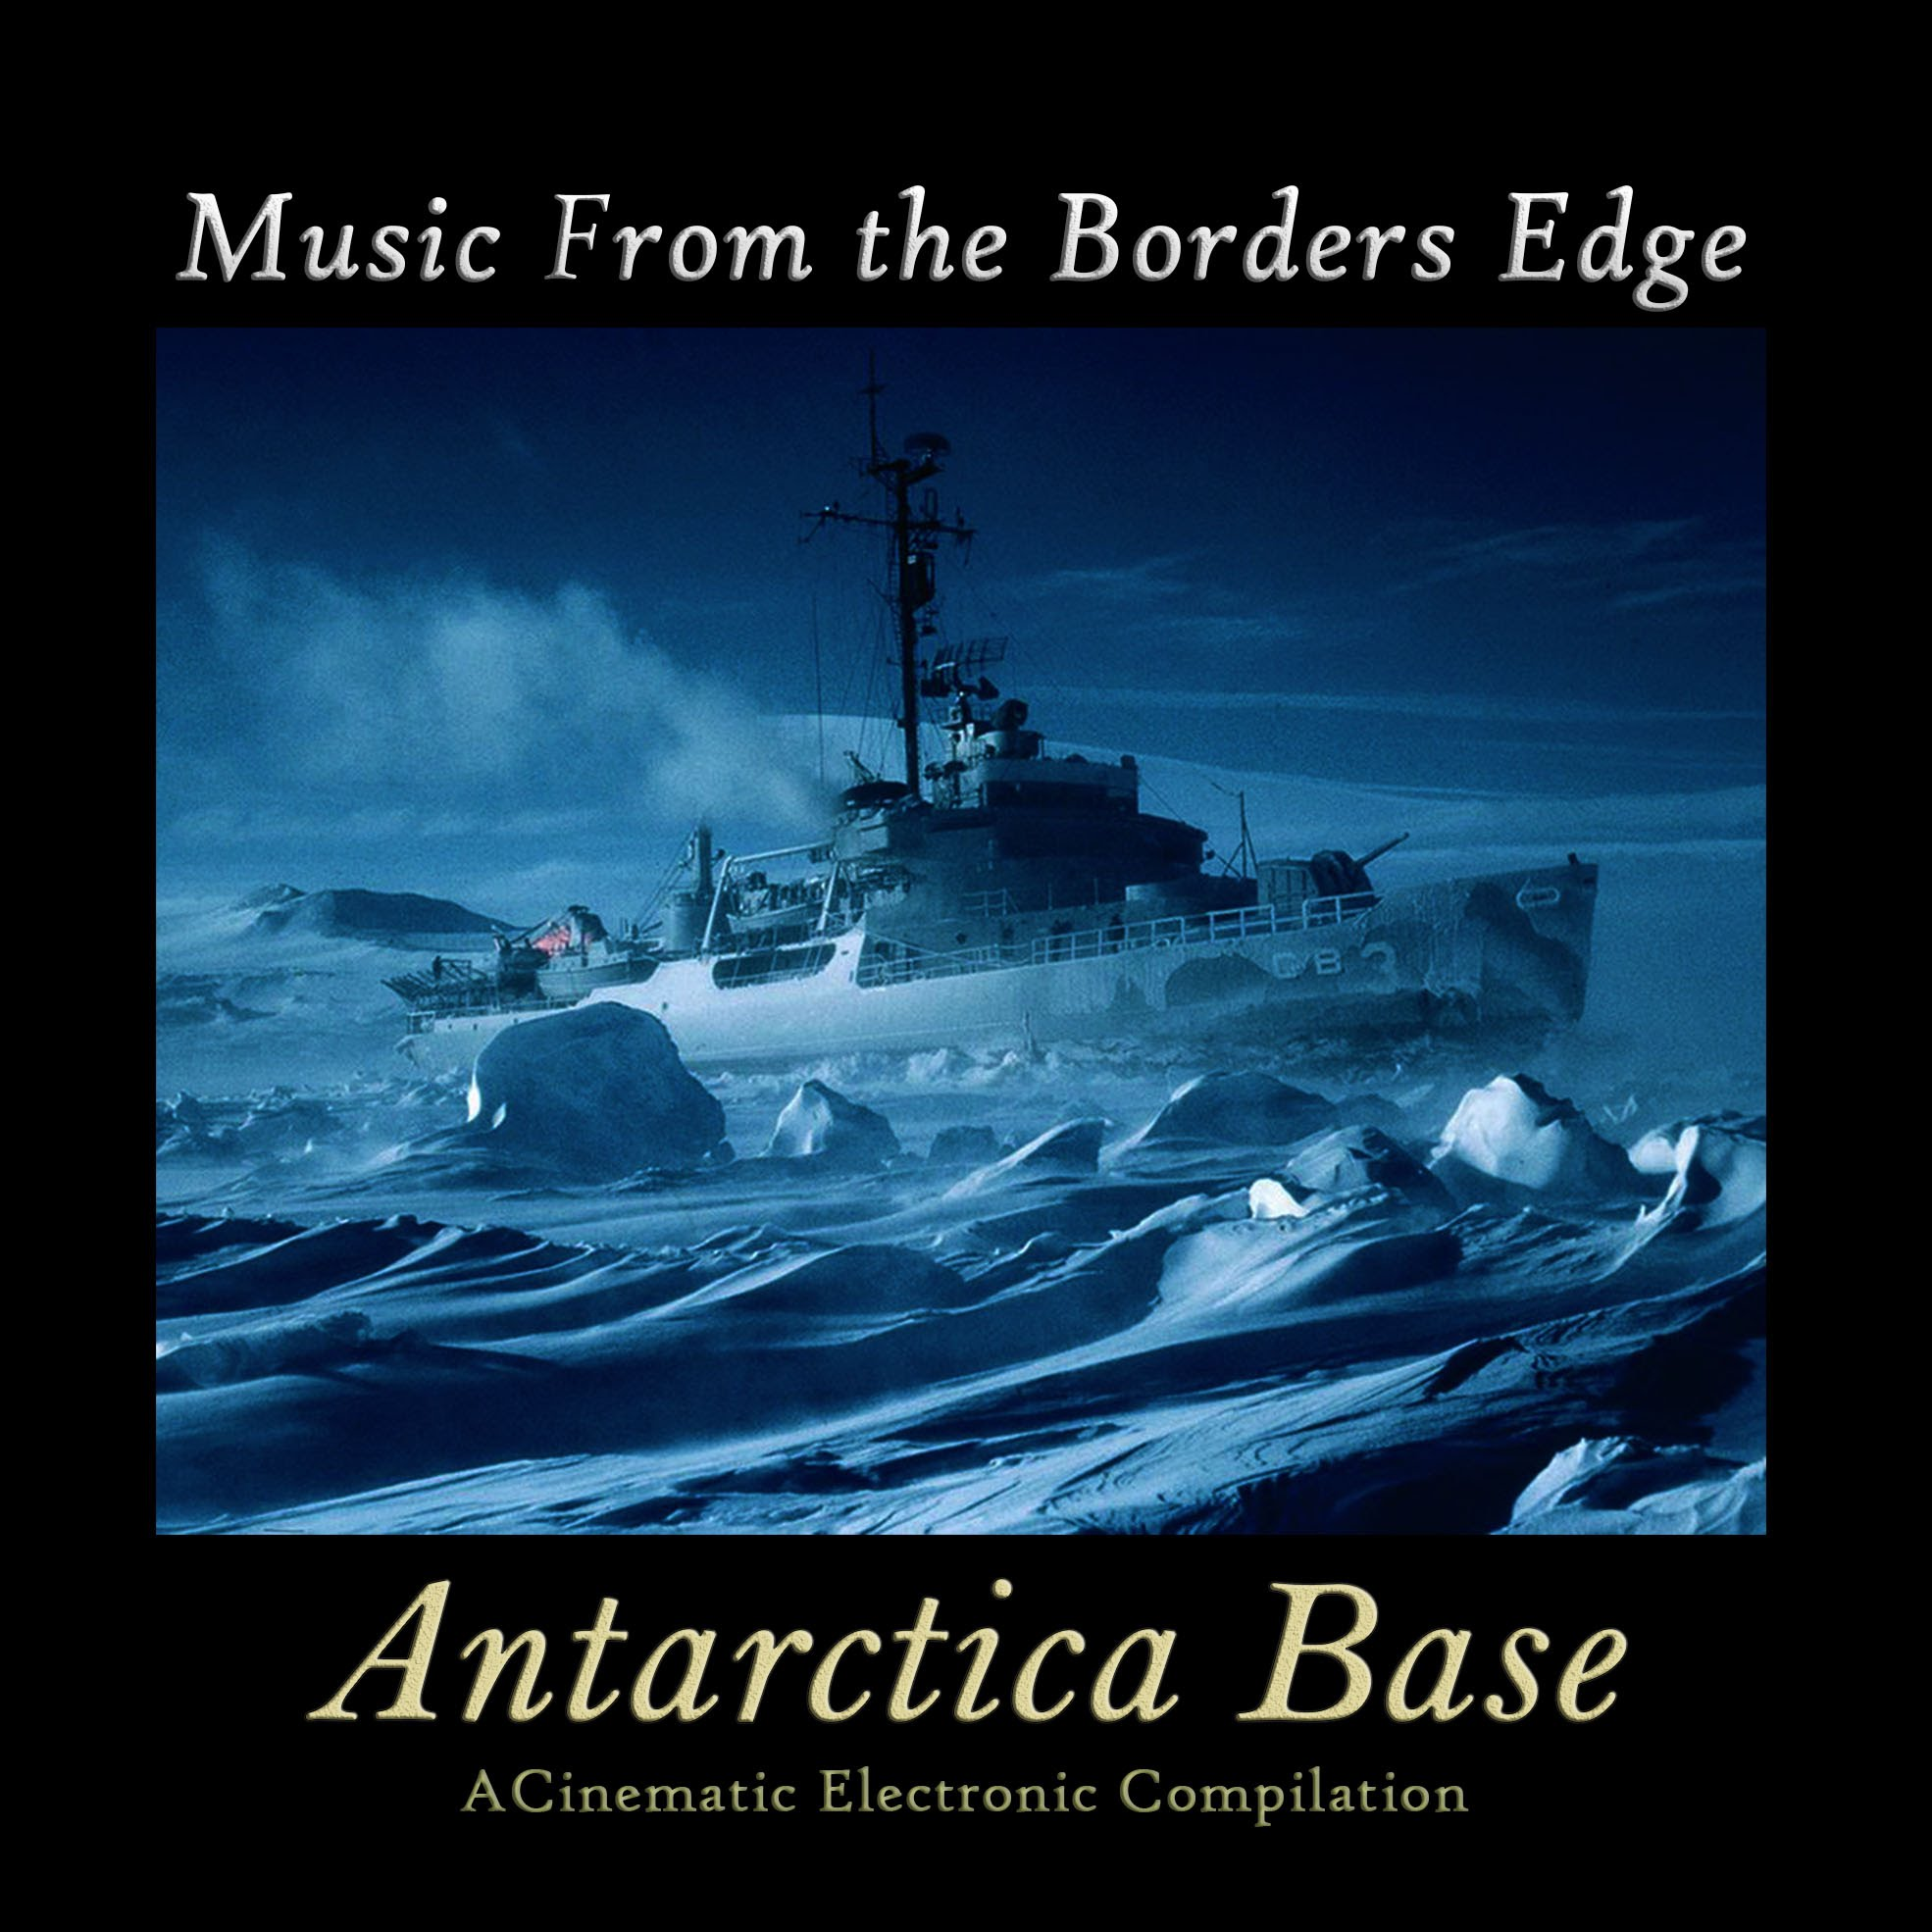 https://bordersedge.bandcamp.com/album/antarctica-base